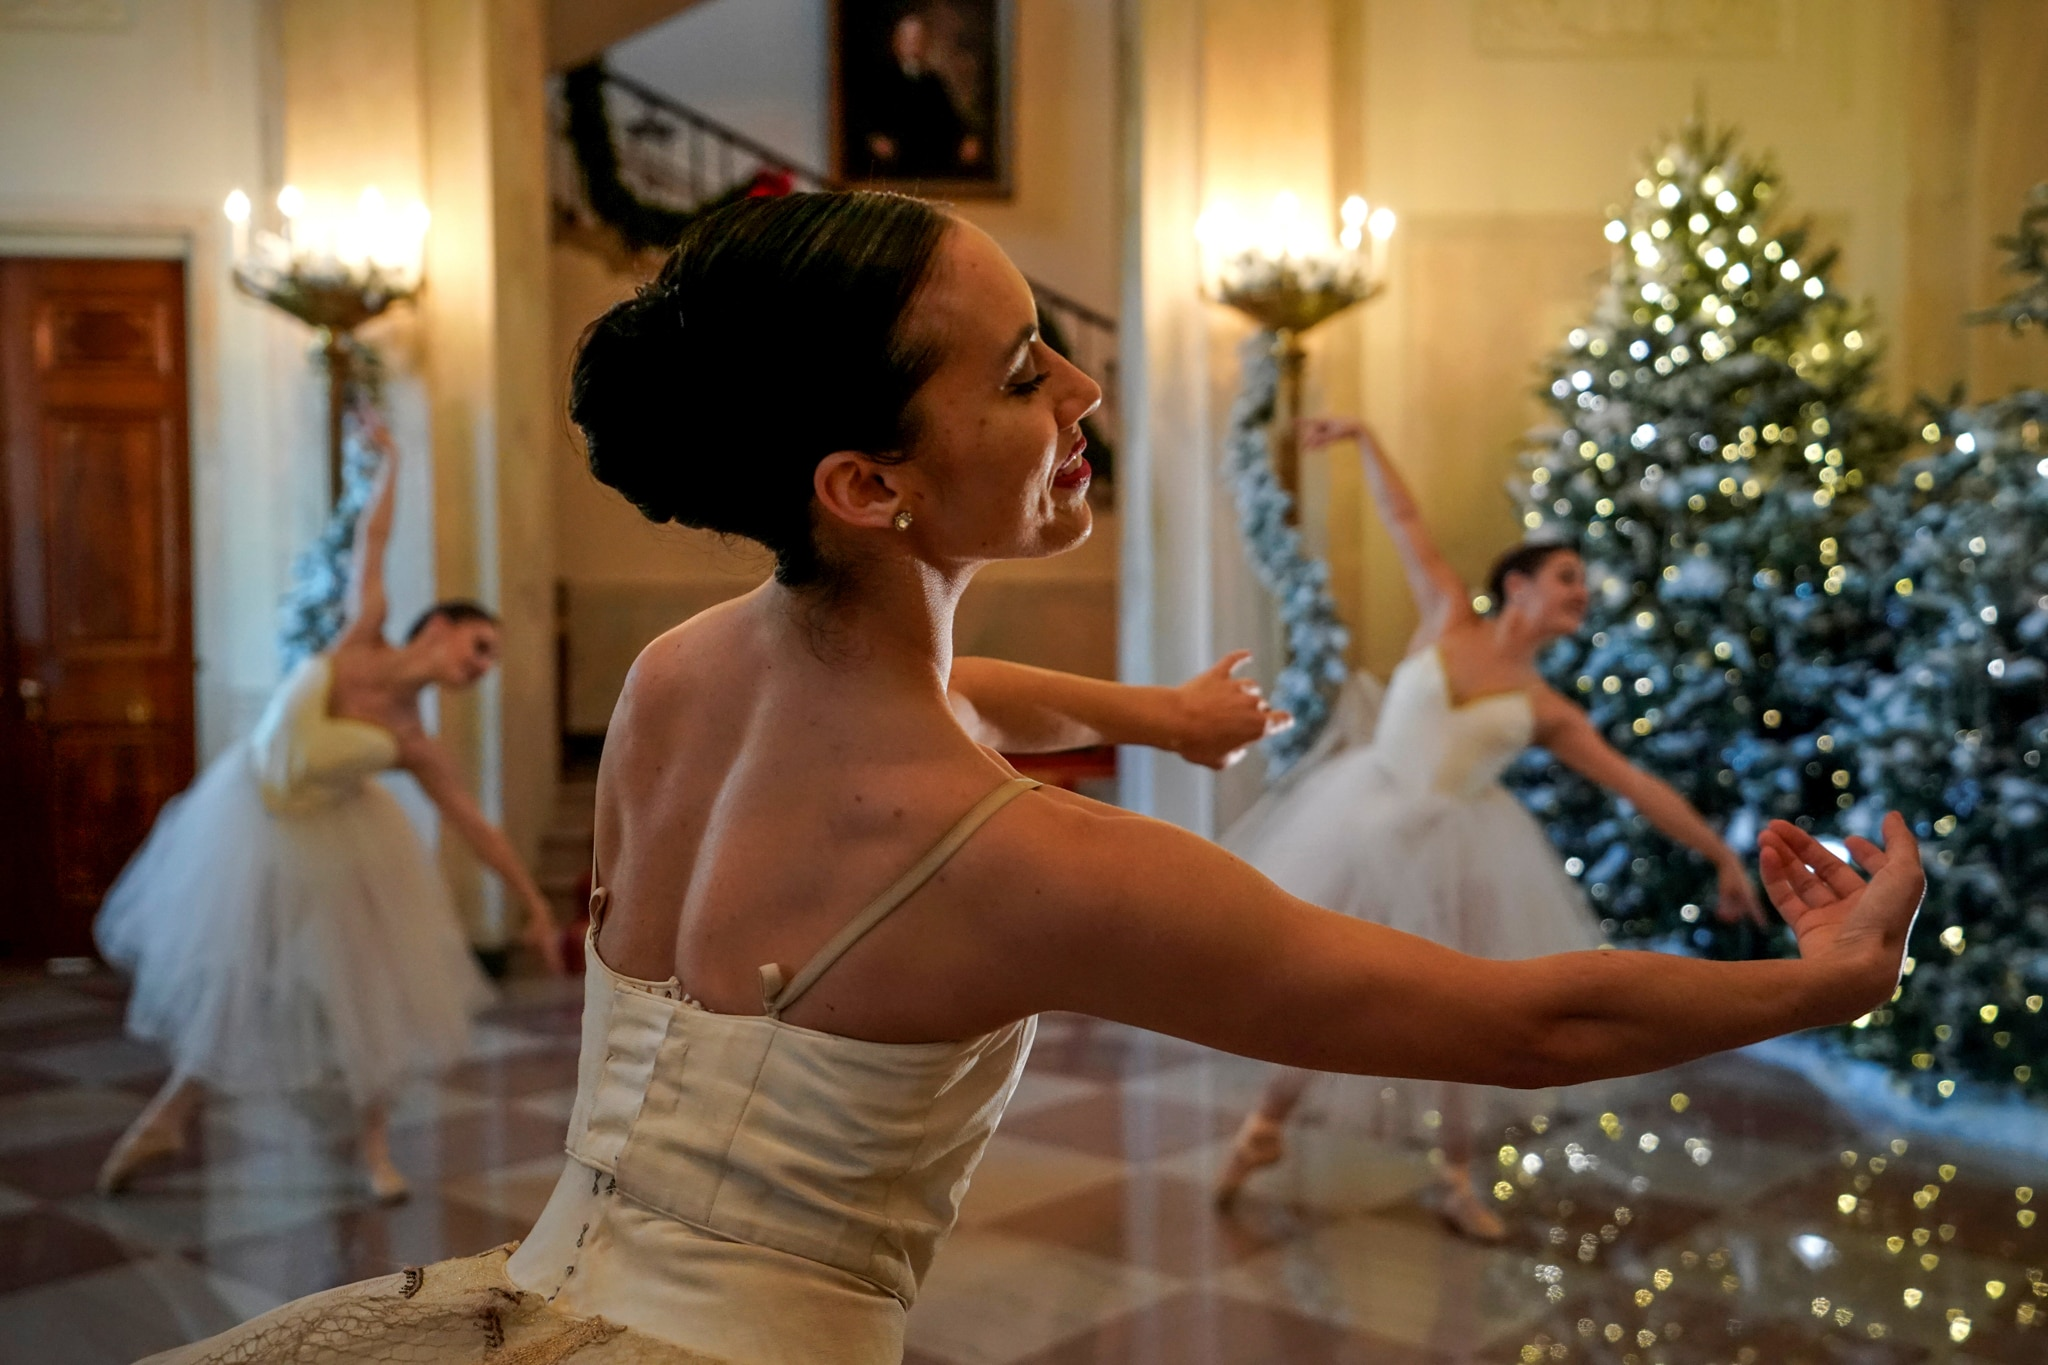 Ballerinas dancing by Christmas trees (© Jonathan Ernst/Reuters)